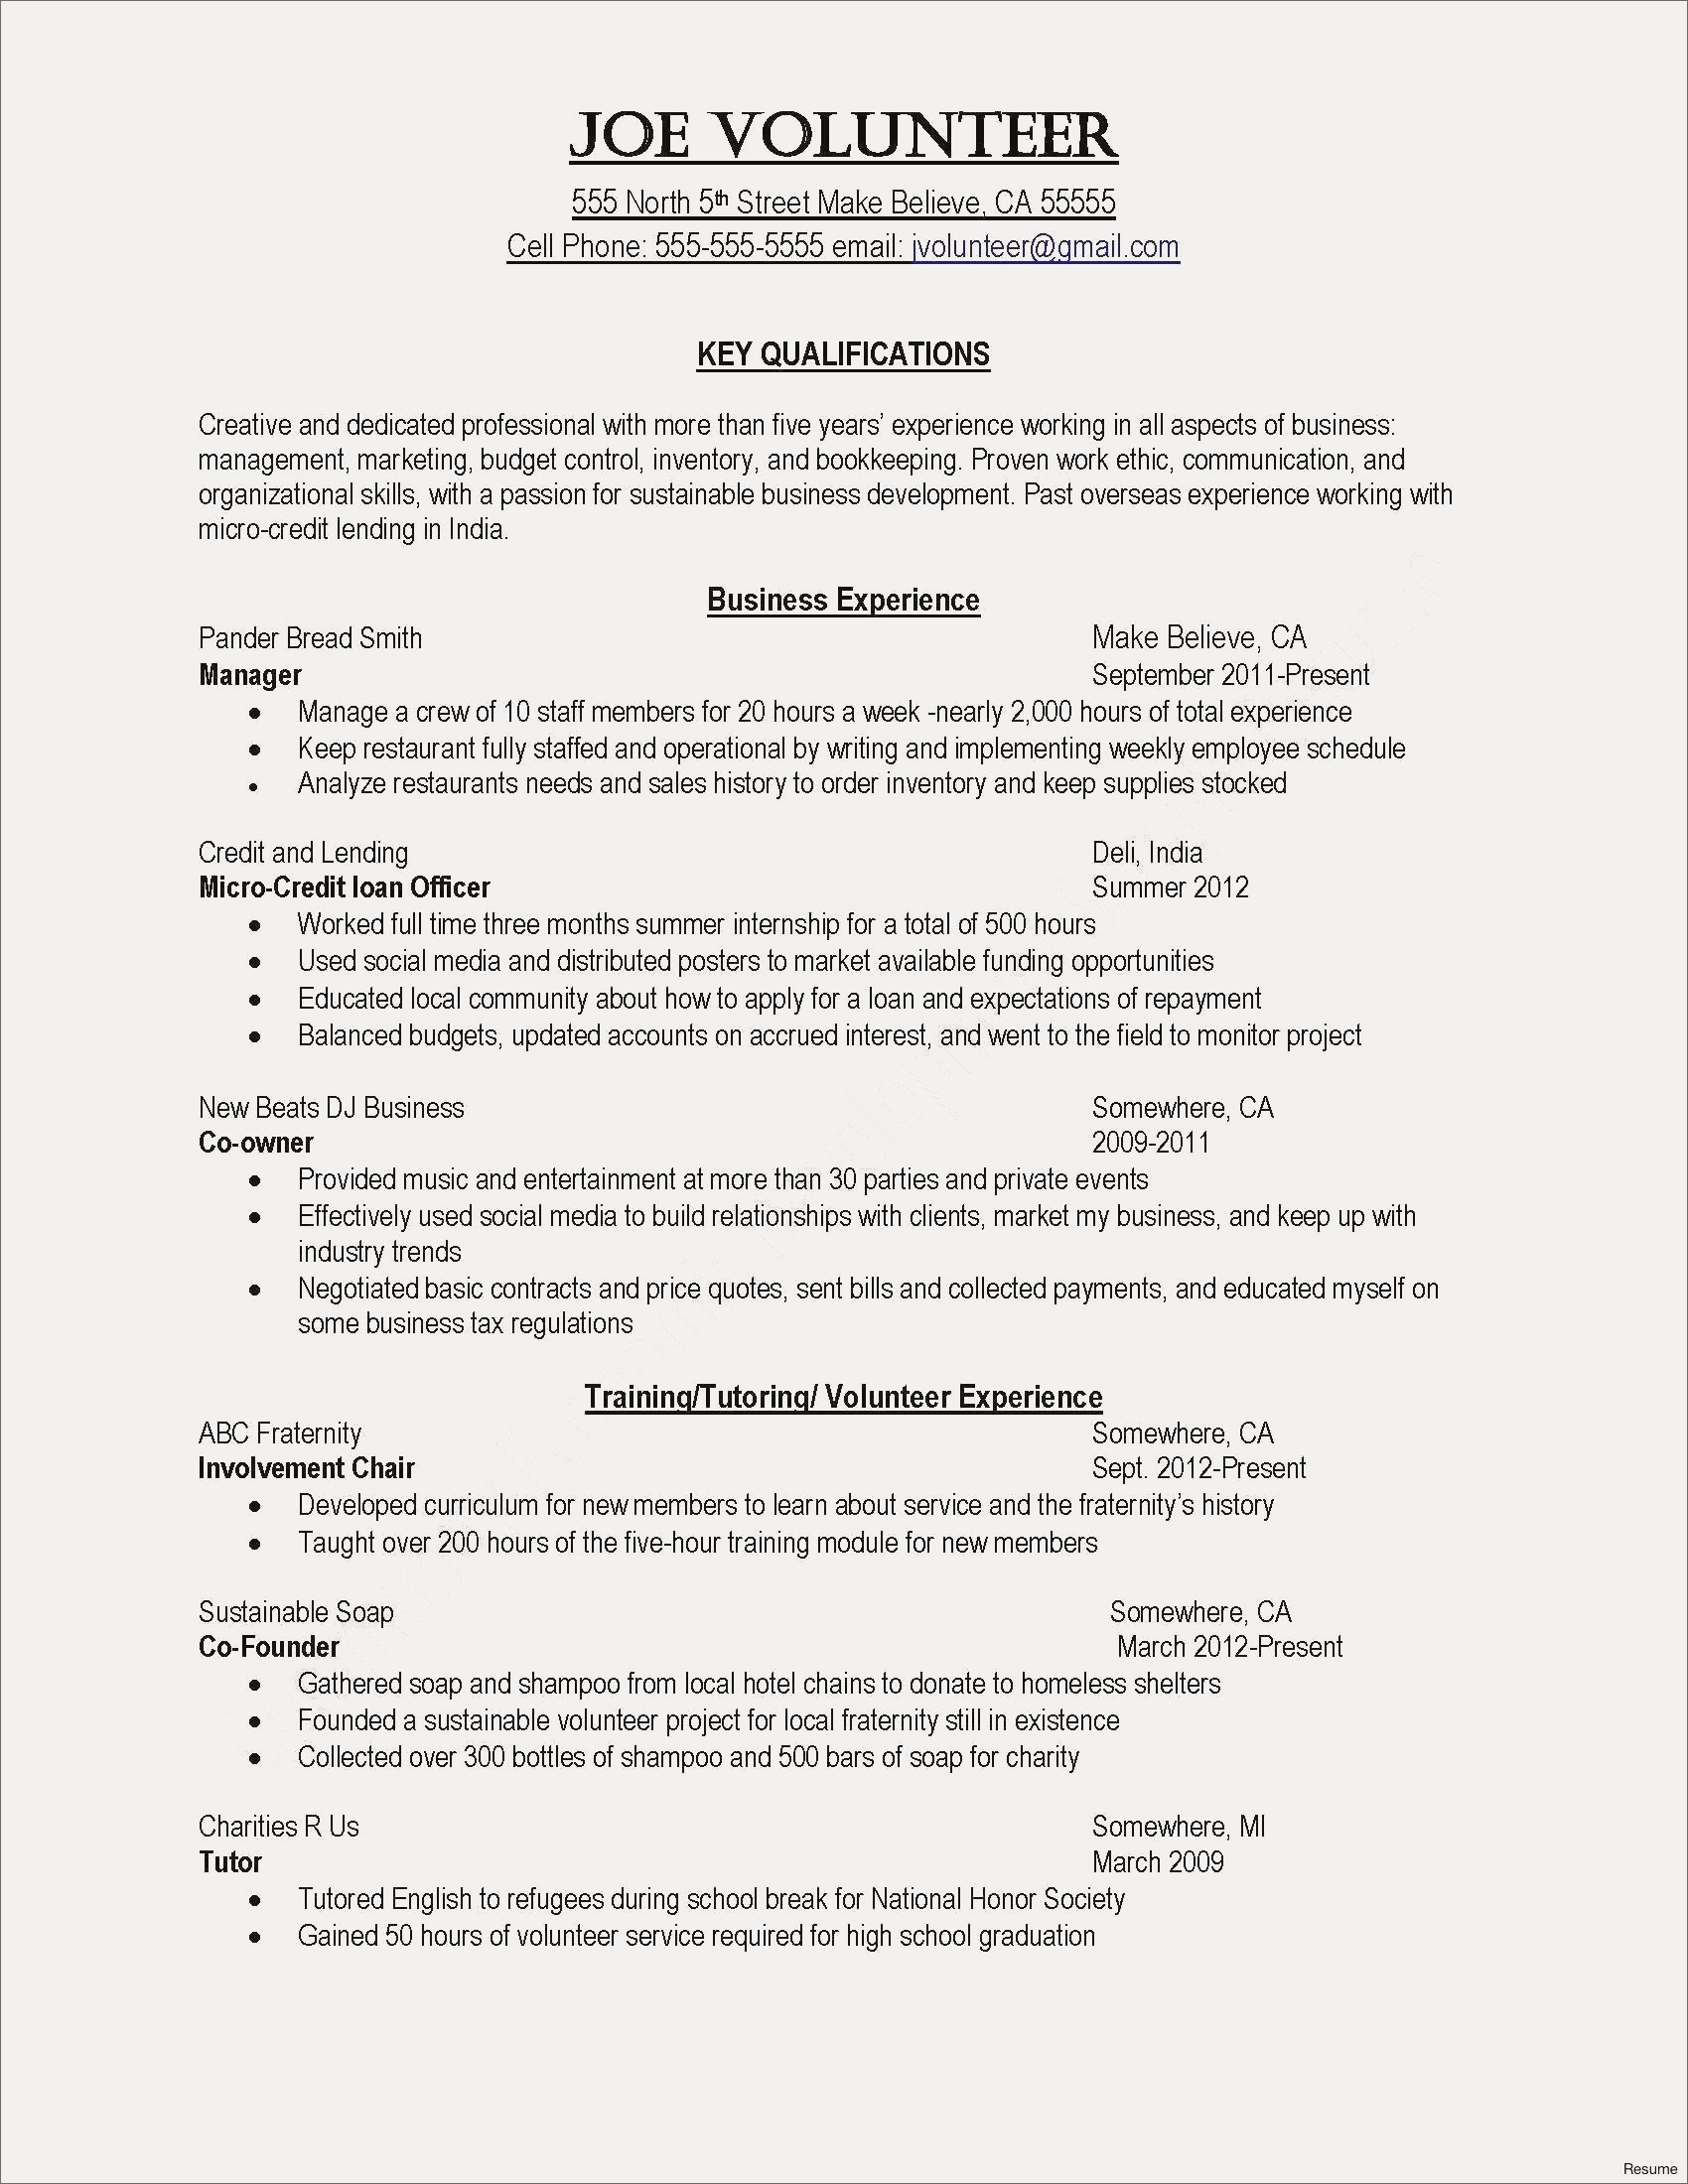 Resume Template with Volunteer Experience - Teenage Resume Template Refrence Best Resume for Highschool Students